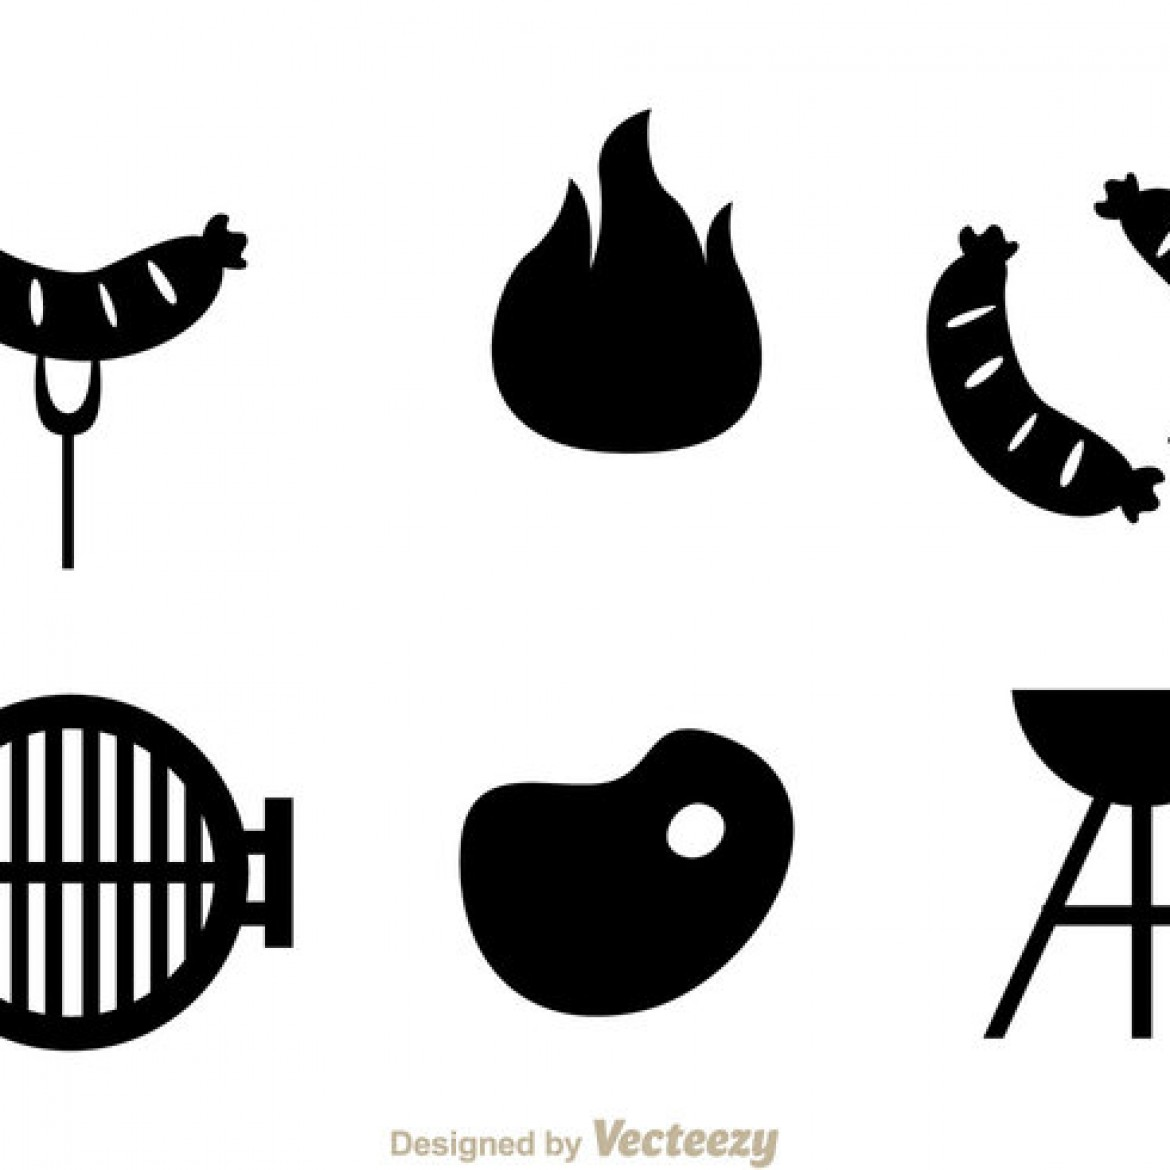 68518 likewise ExpertOutfit additionally Clipart Family Bbq also Happiness Is The Last Day Of School furthermore Corporate theft. on company bbq clip art